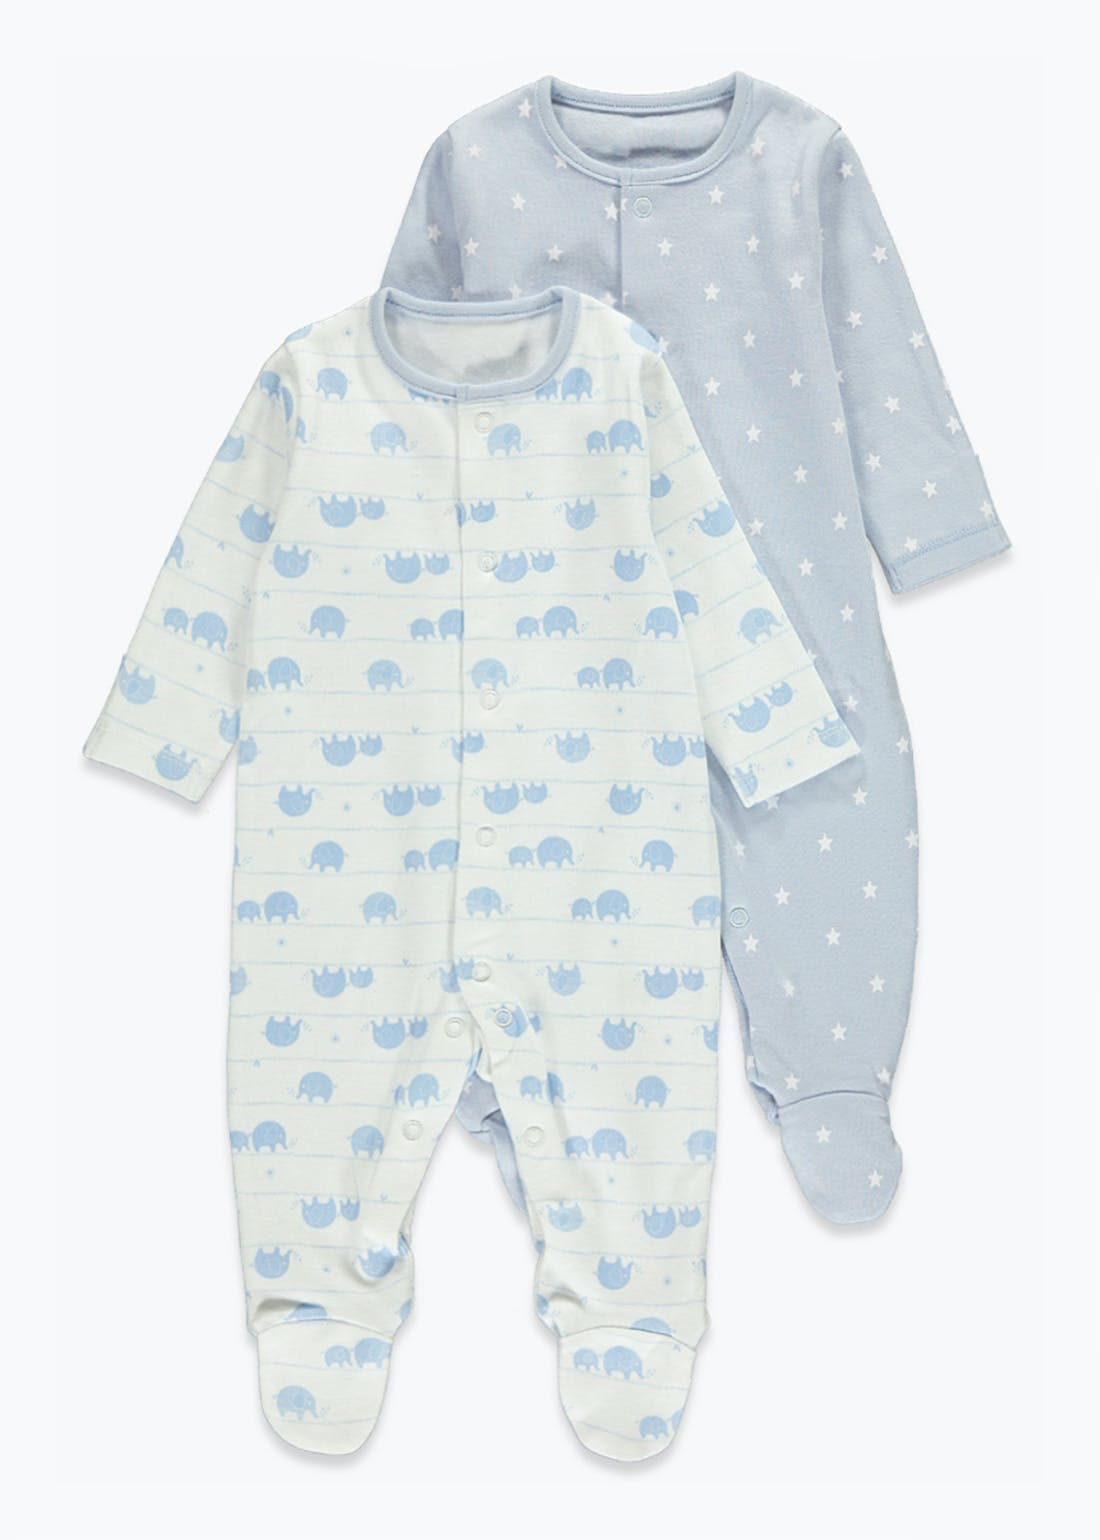 Unisex 2 Pack Elephant Print Baby Grows (Tiny Baby-23mths)